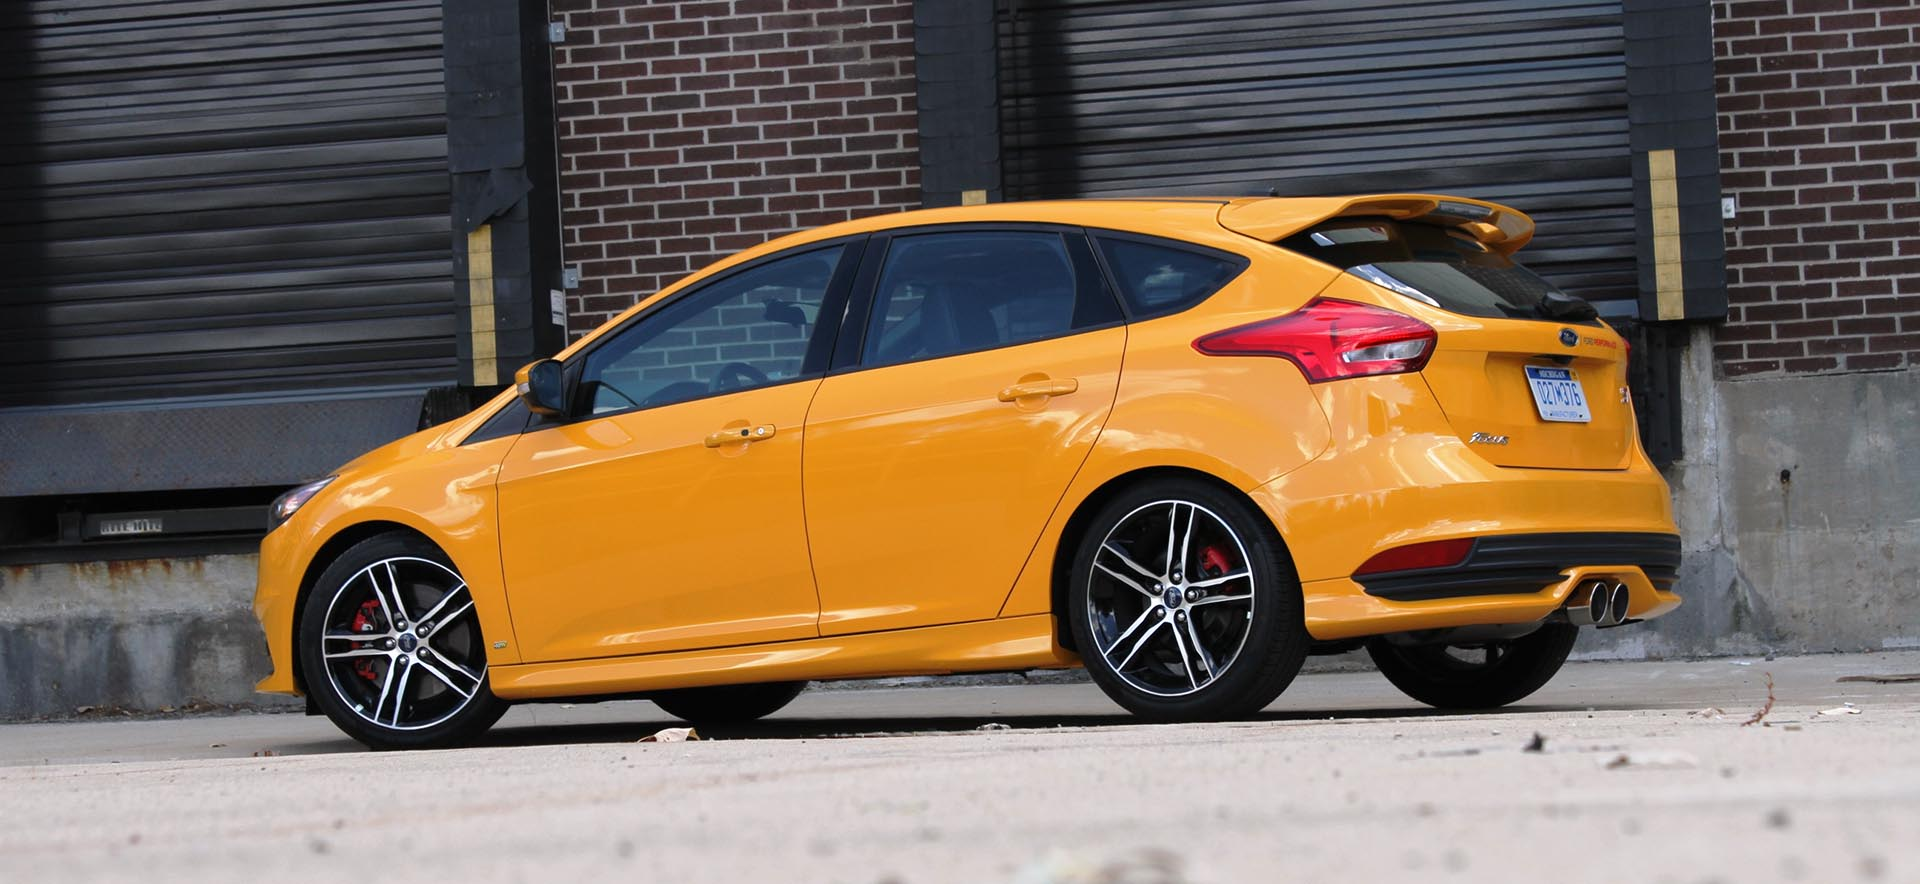 08_Ford Focus ST Mountune Rear Yellow